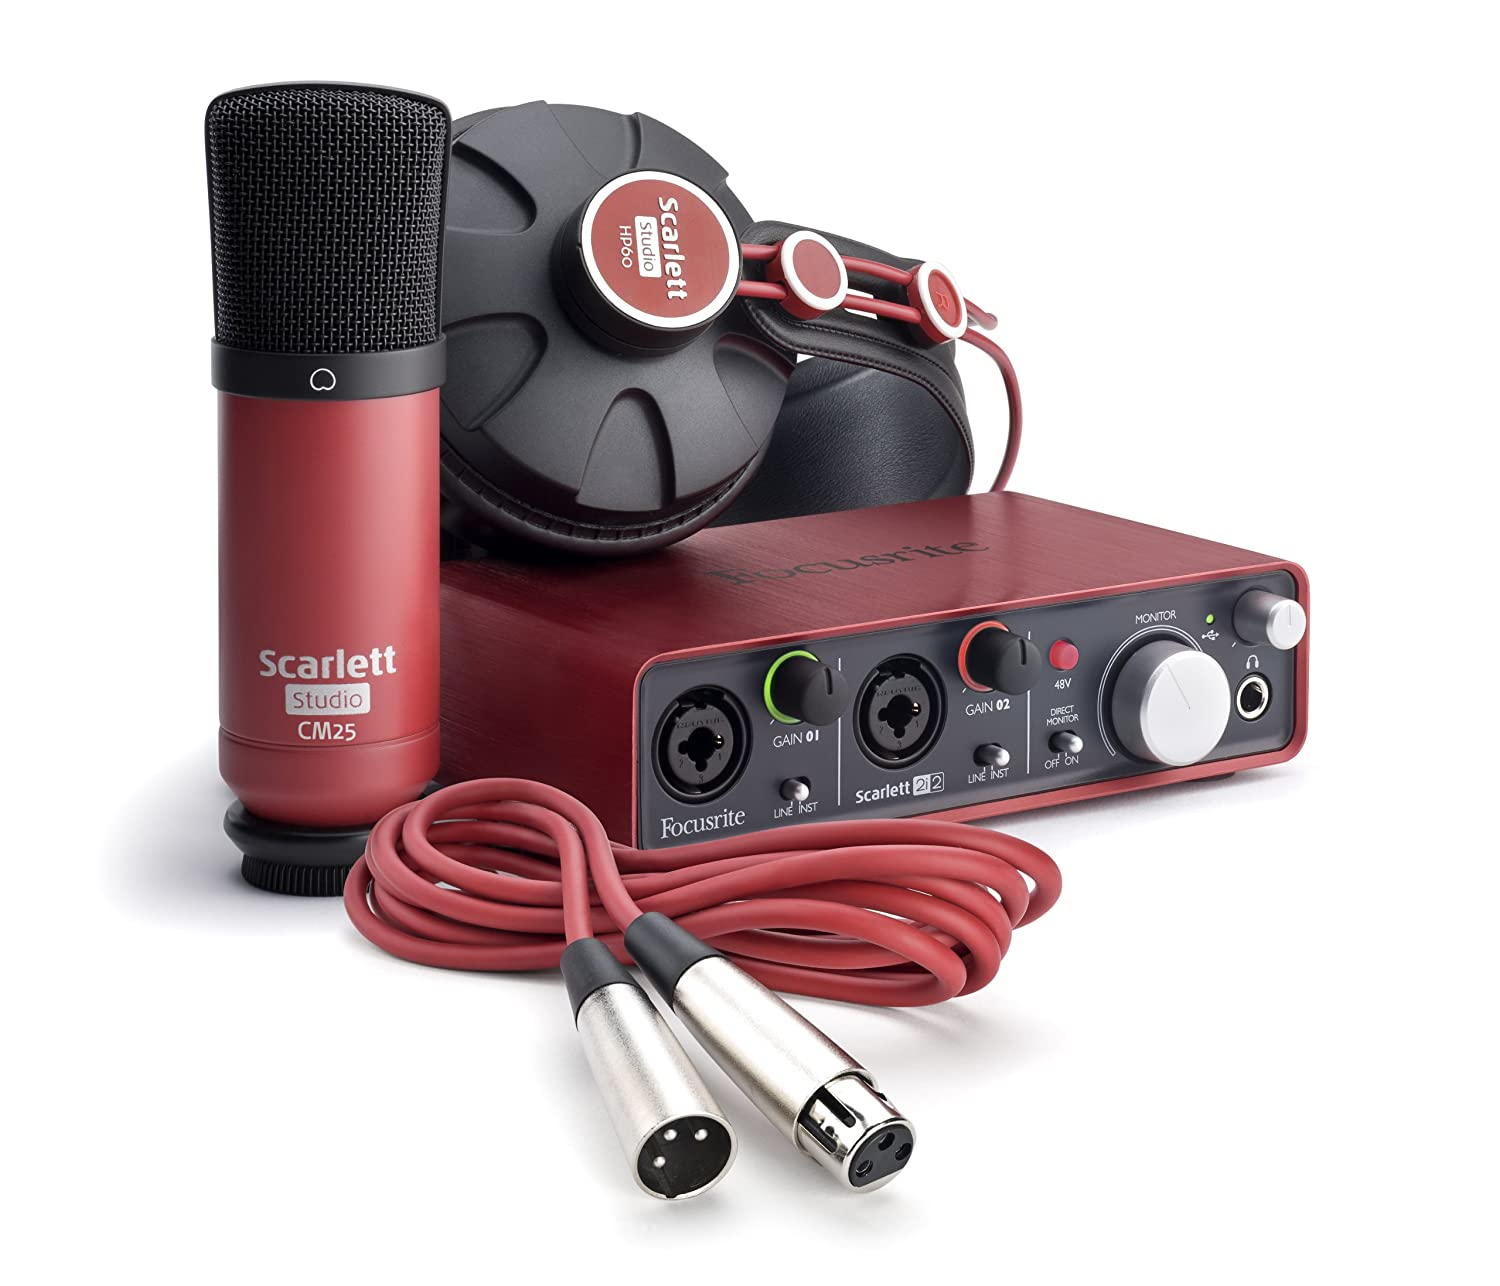 Groovy Focusrite Scarlett Studio Usb Audio Interface Recording Package Largest Home Design Picture Inspirations Pitcheantrous